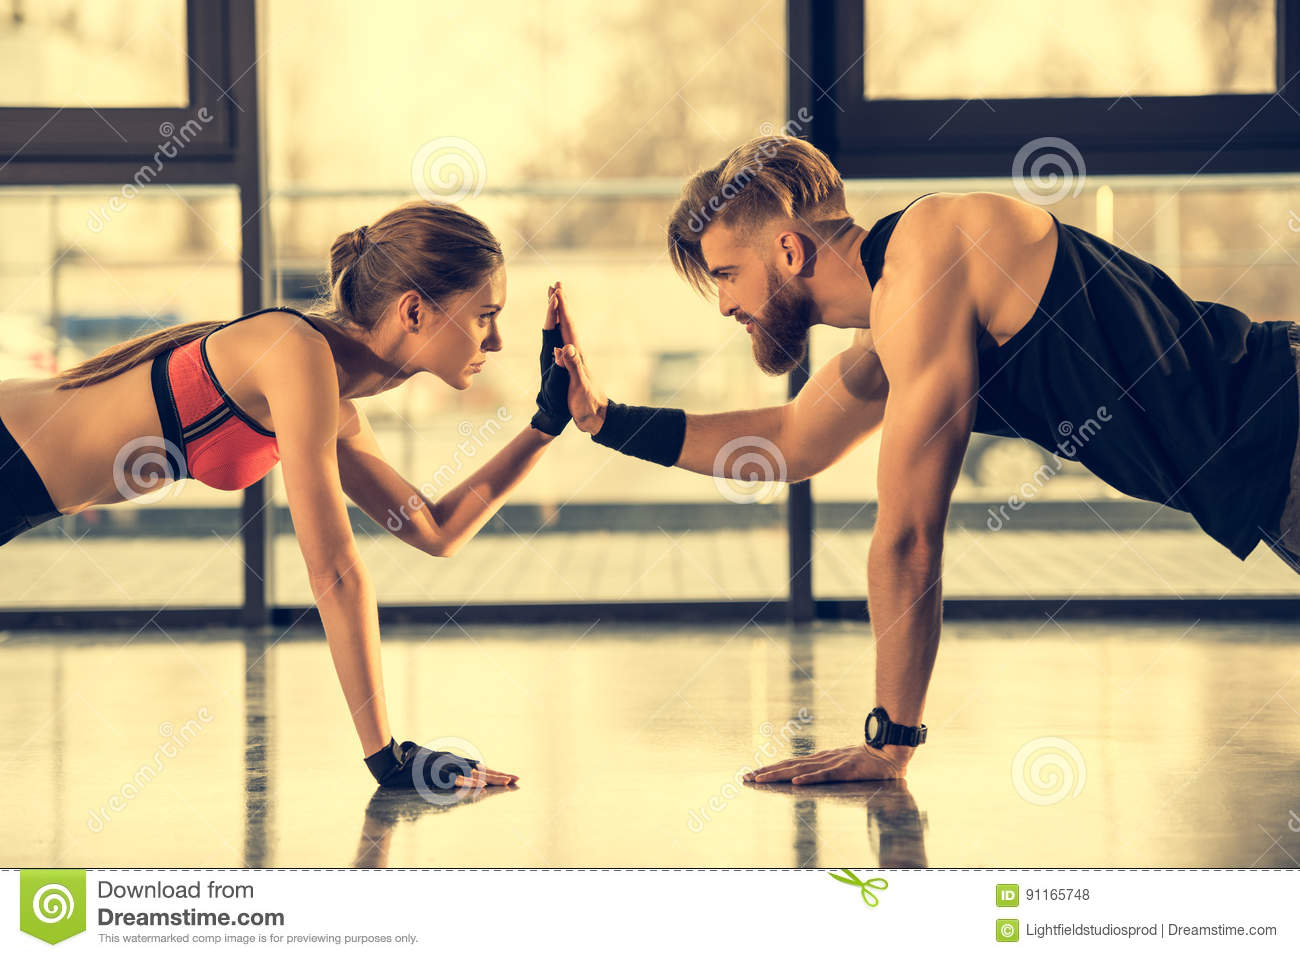 Sporty man and woman doing plank exercise and giving high five